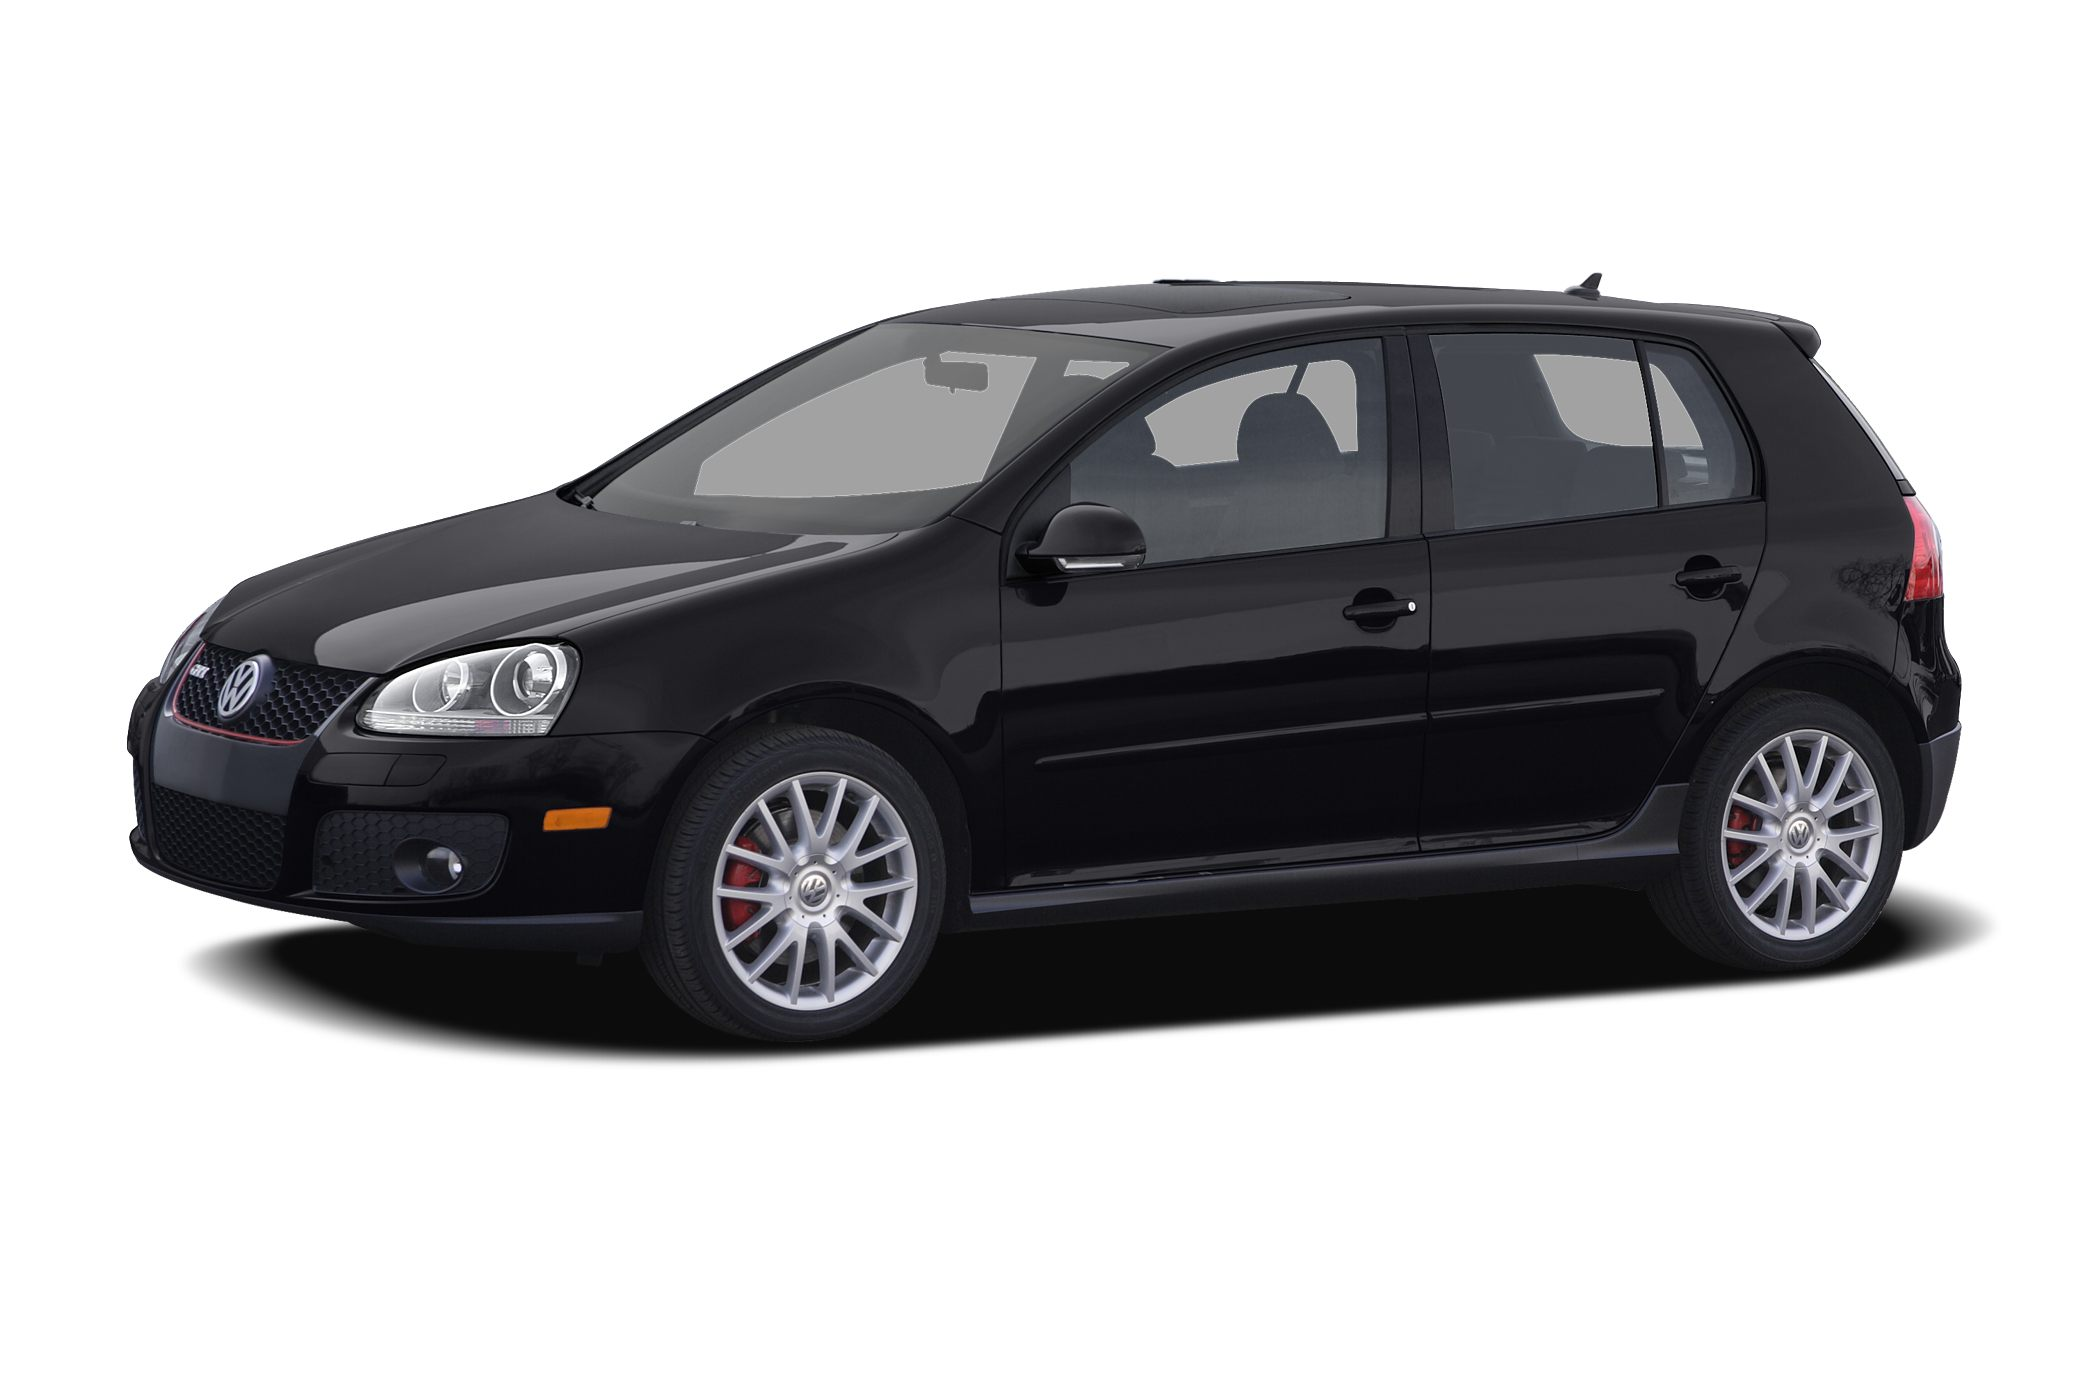 2008 Volkswagen GTI Hatchback for sale in Lancaster for $10,995 with 90,044 miles.